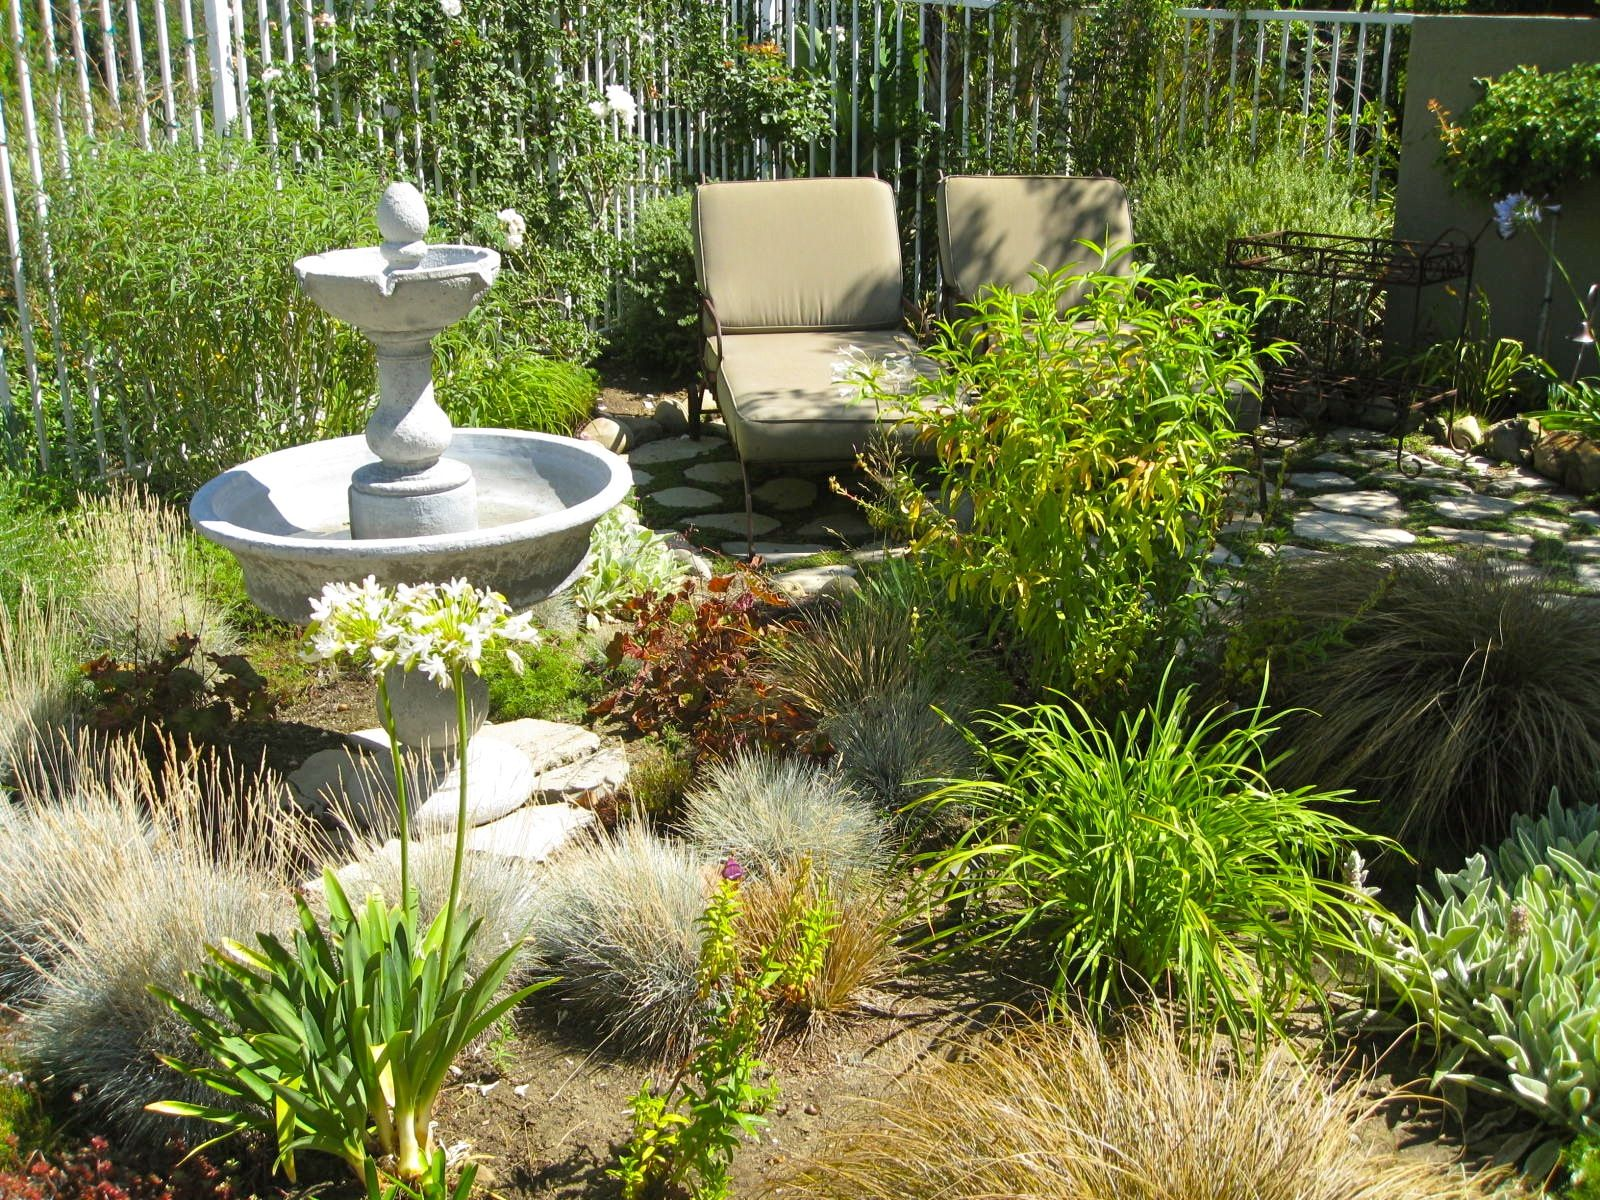 consider a no lawn backyard design to maximize the use of a small